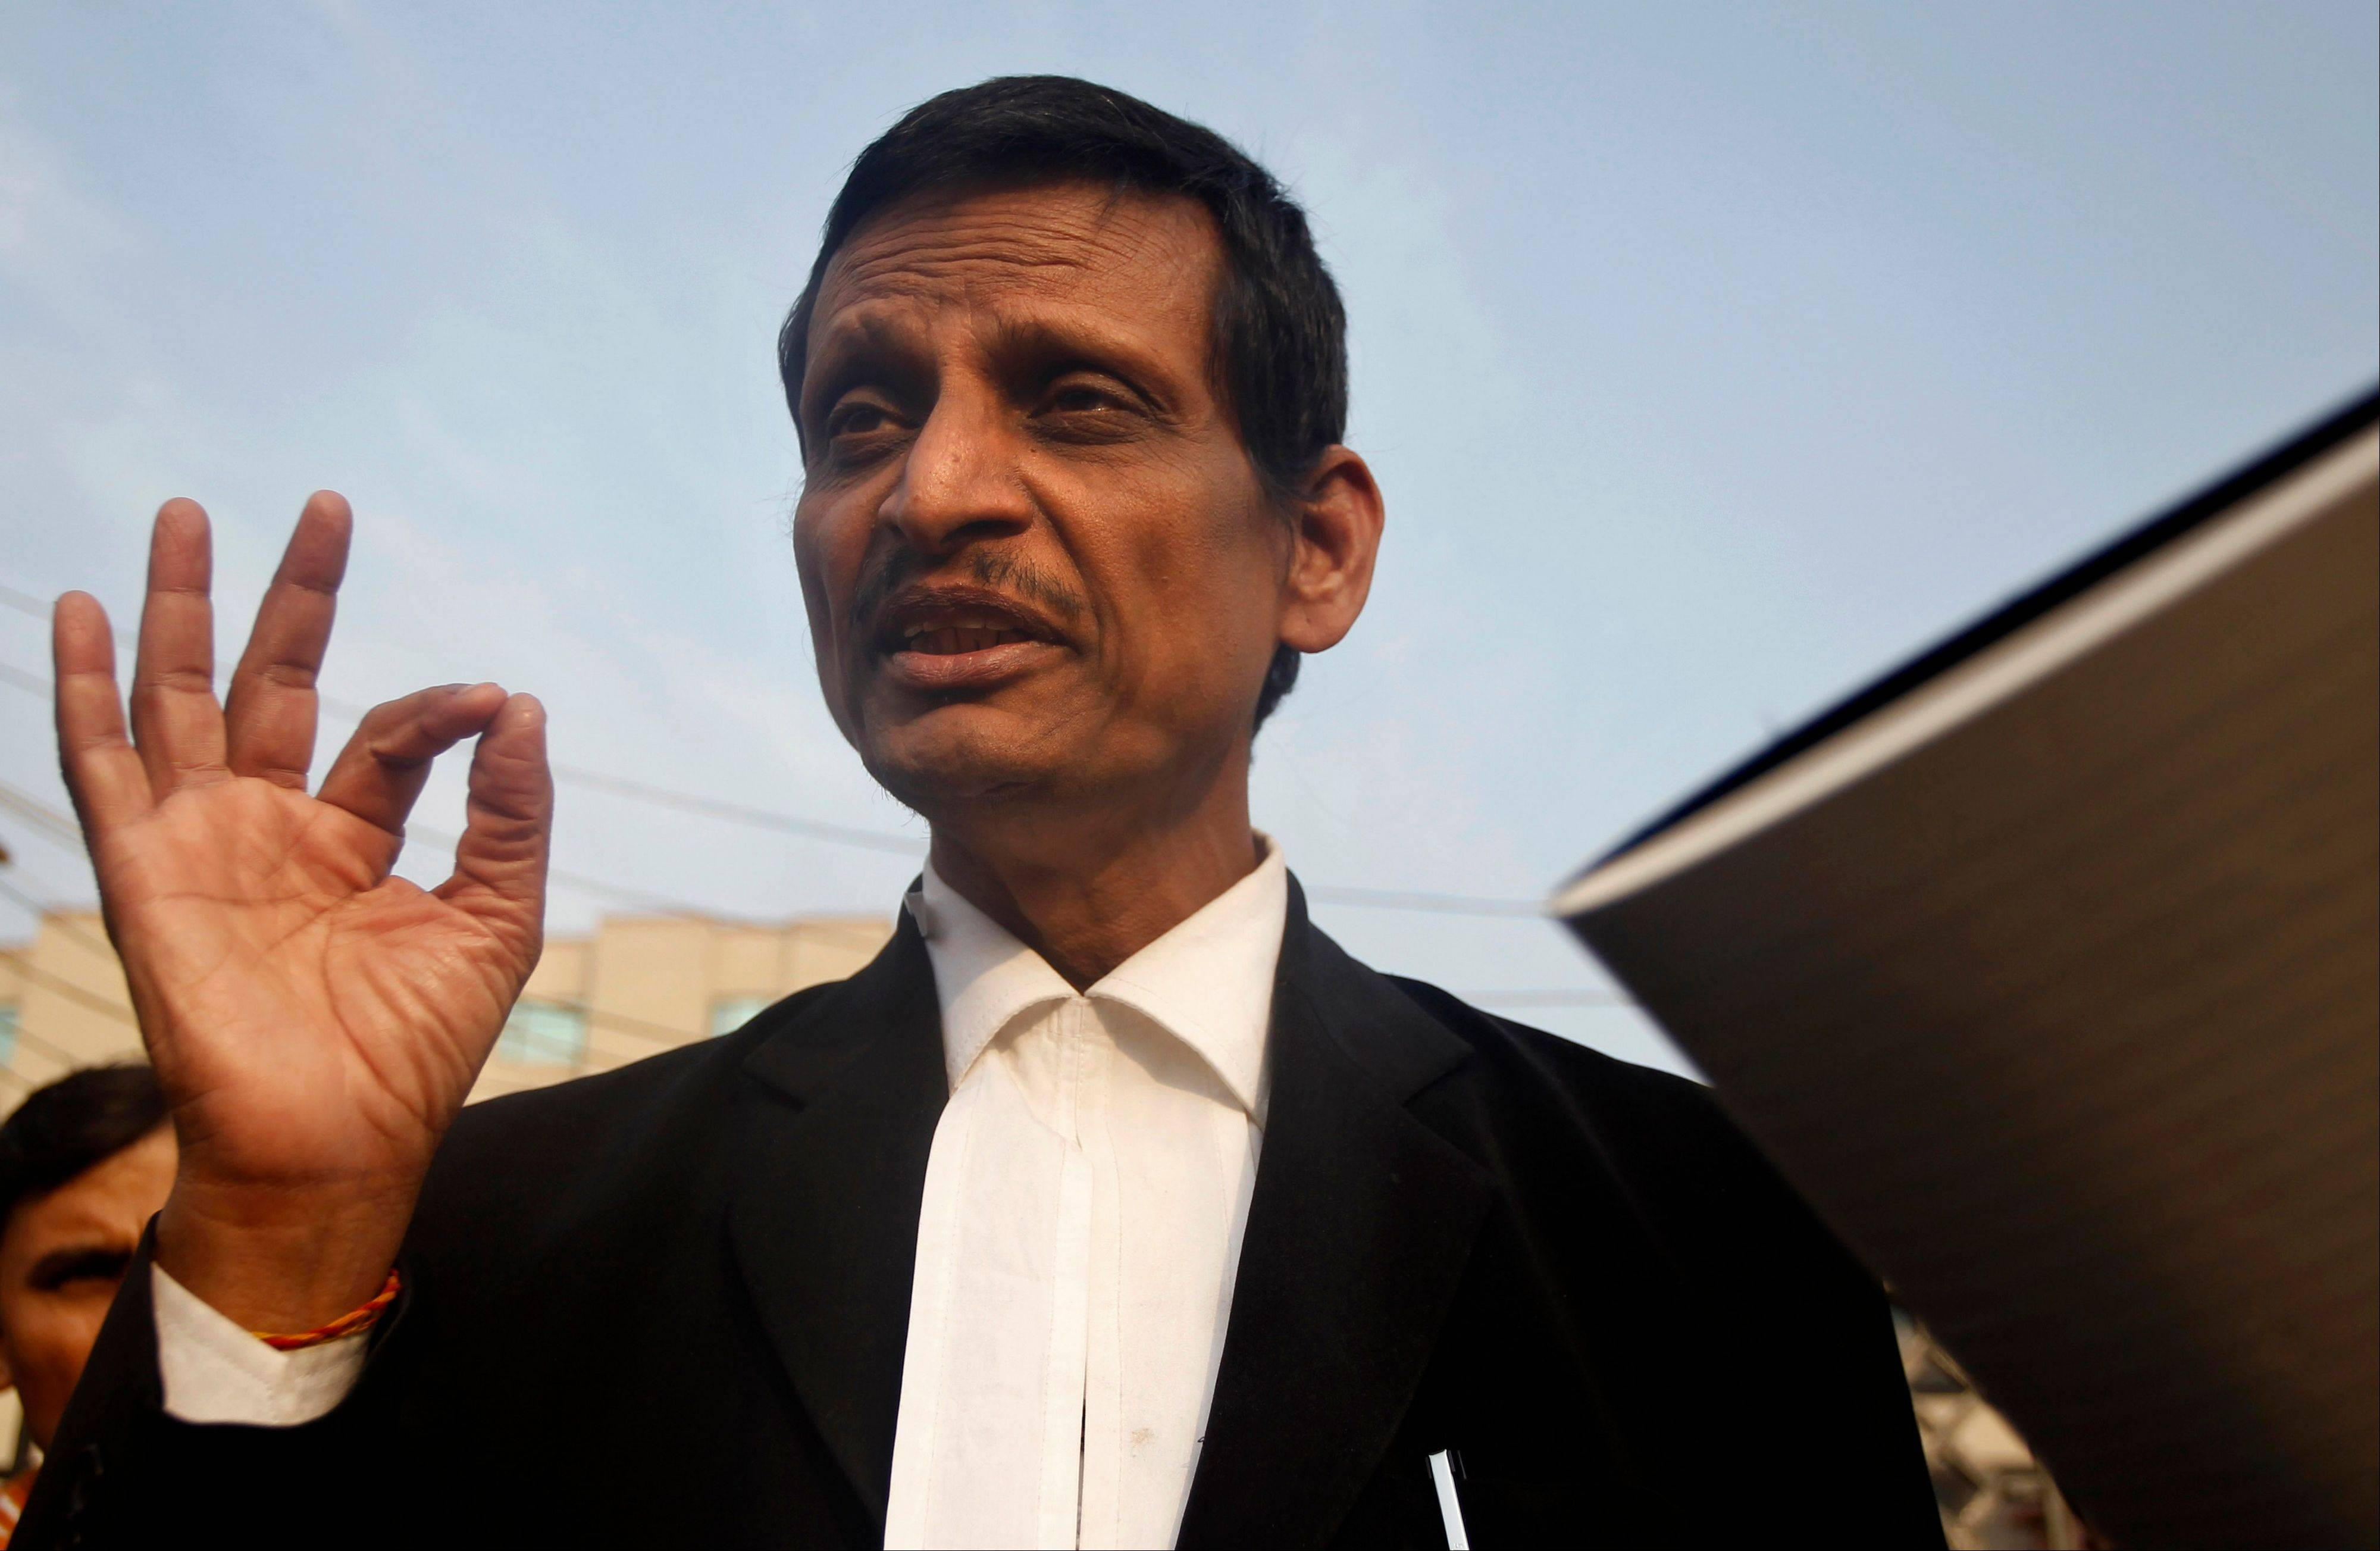 Manohar Lal Sharma, lawyer for one of the accused, speaks to the journalists outside the Saket district court complex where the accused in a gang rape are to be tried in New Delhi, India, Monday. The lawyer for one of the five men charged in the fatal gang rape of a woman on a moving New Delhi bus said Monday that his client is a minor and asked a court to order a medical test to determine his age.